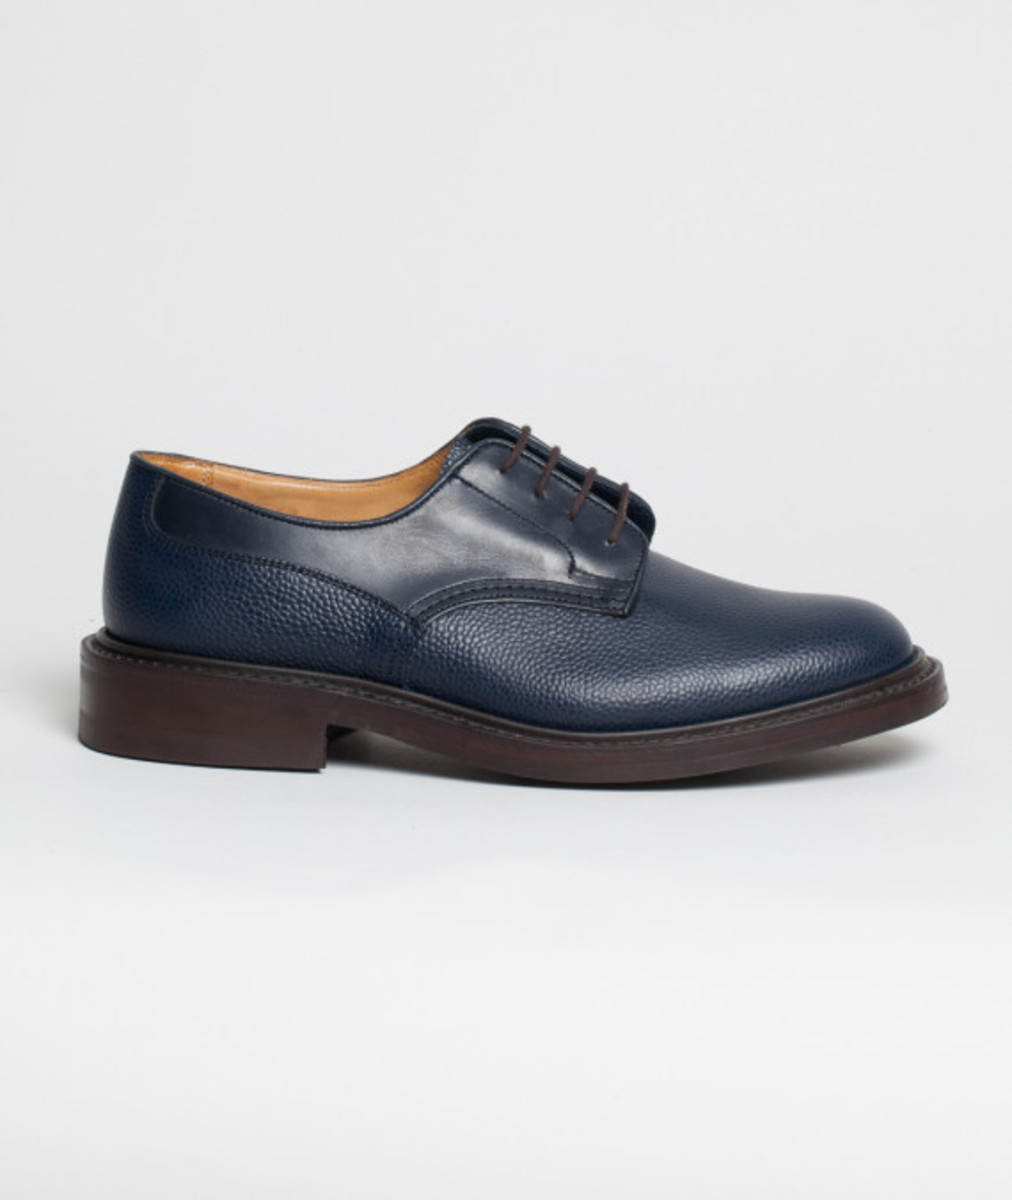 norse-projects-trickers-woodstock-08